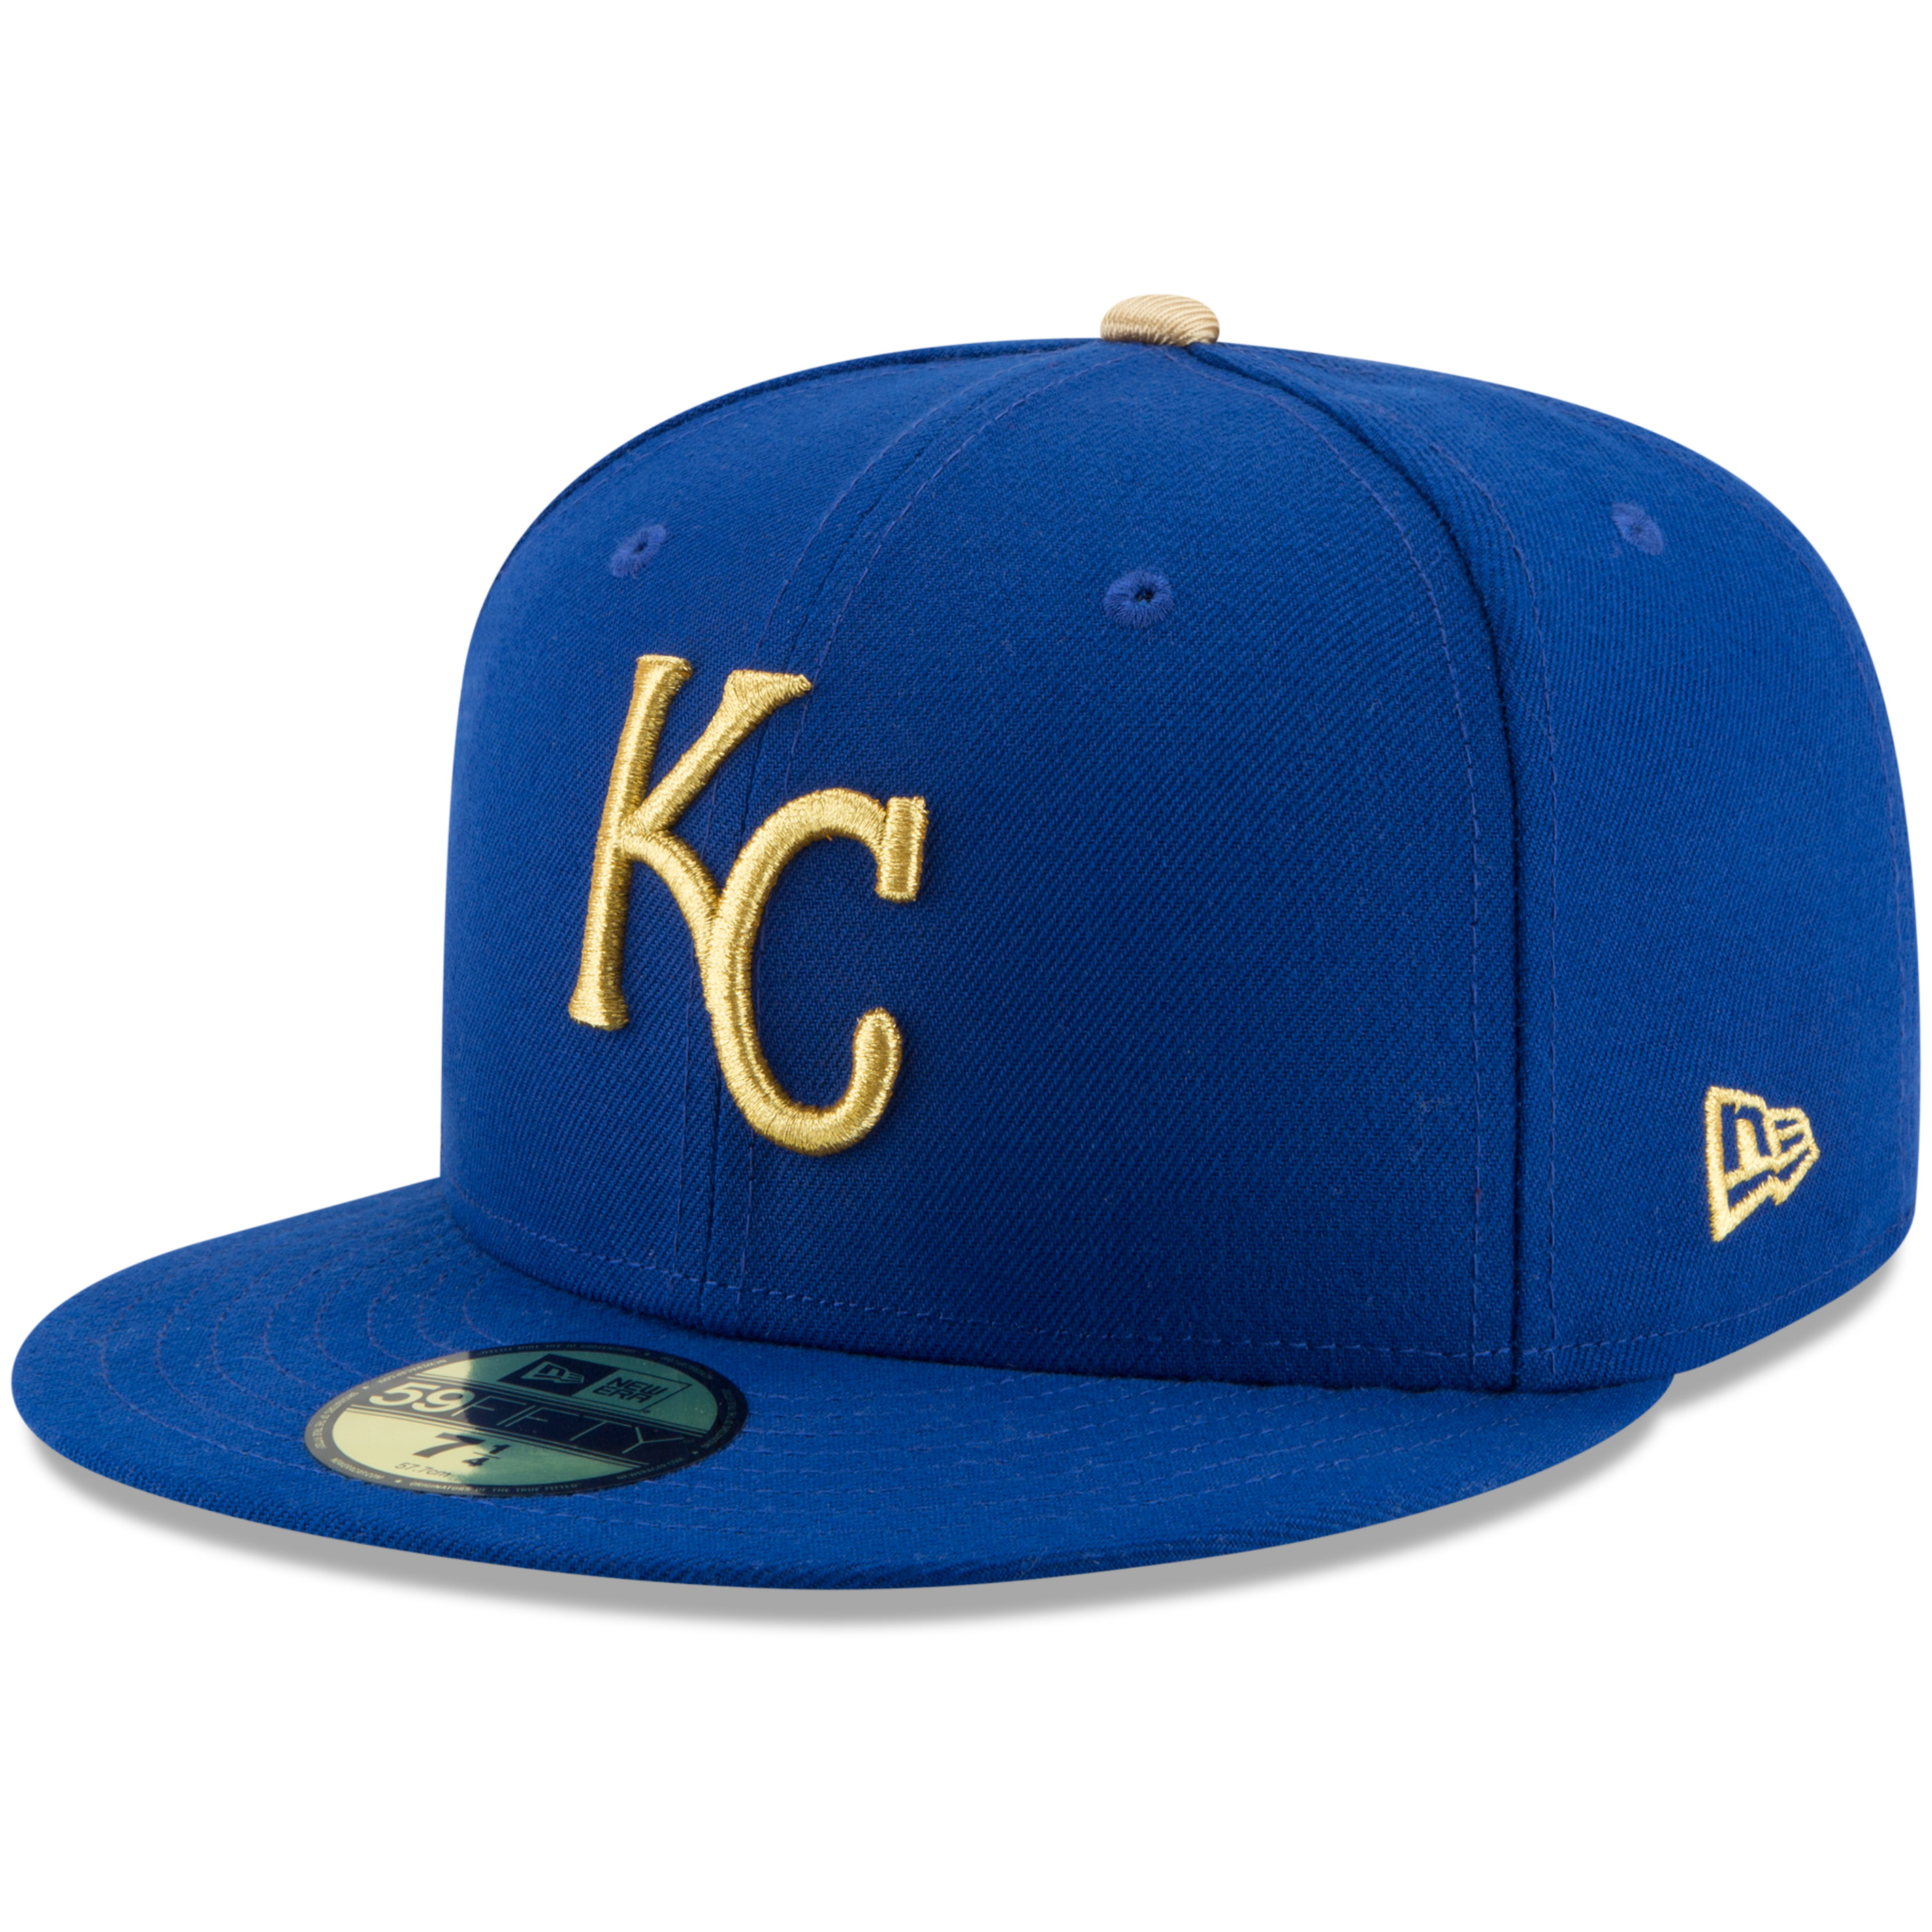 07179a2d59e kansas city royals new era authentic collection 59fifty fitted hat - royal  - Walmart.com